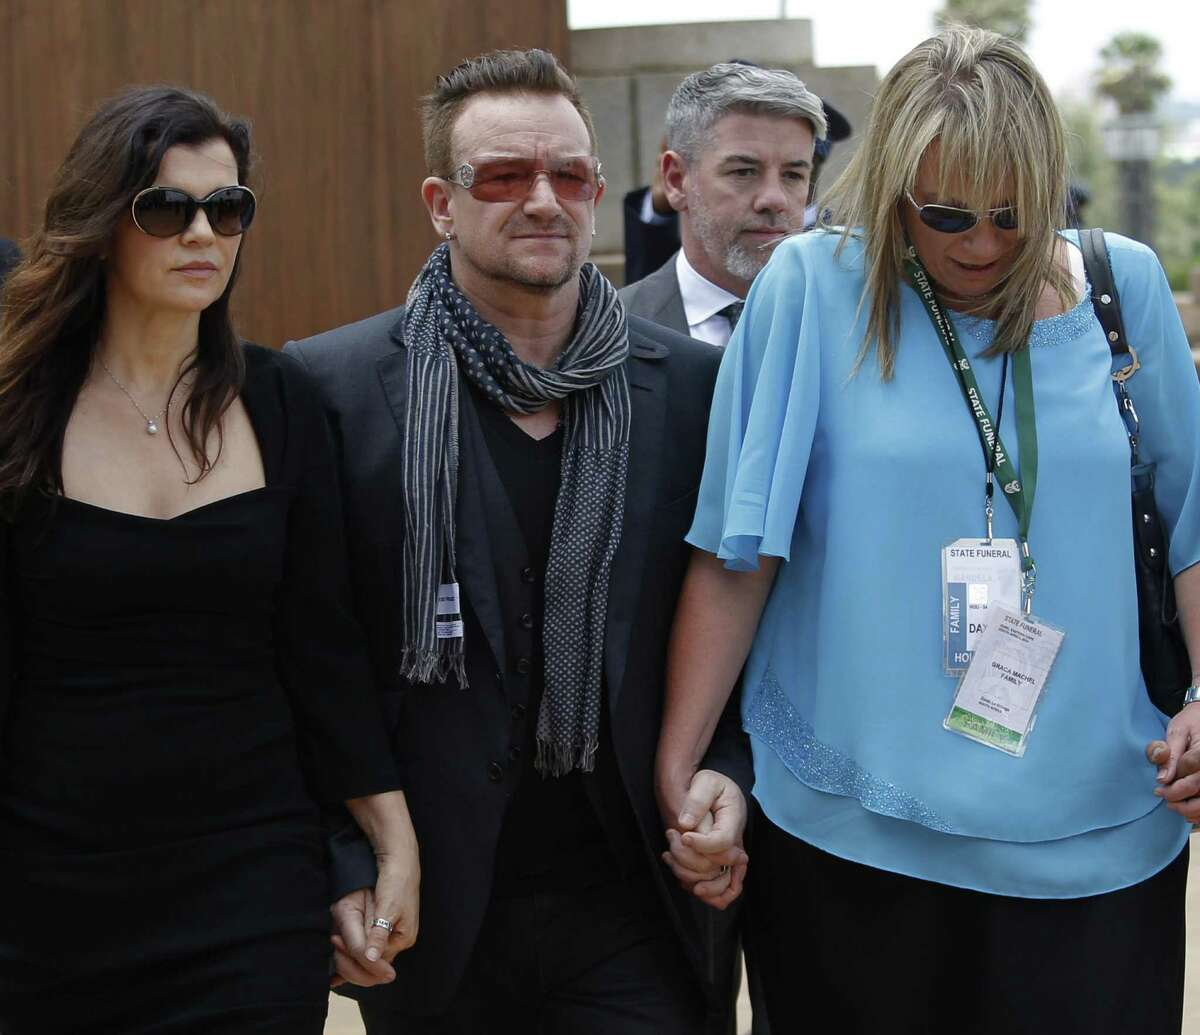 Bono and his wife, Ali Hewson (left), and Nelson Mandela's former assistant, Zelda le Grange, leave after paying their respects.